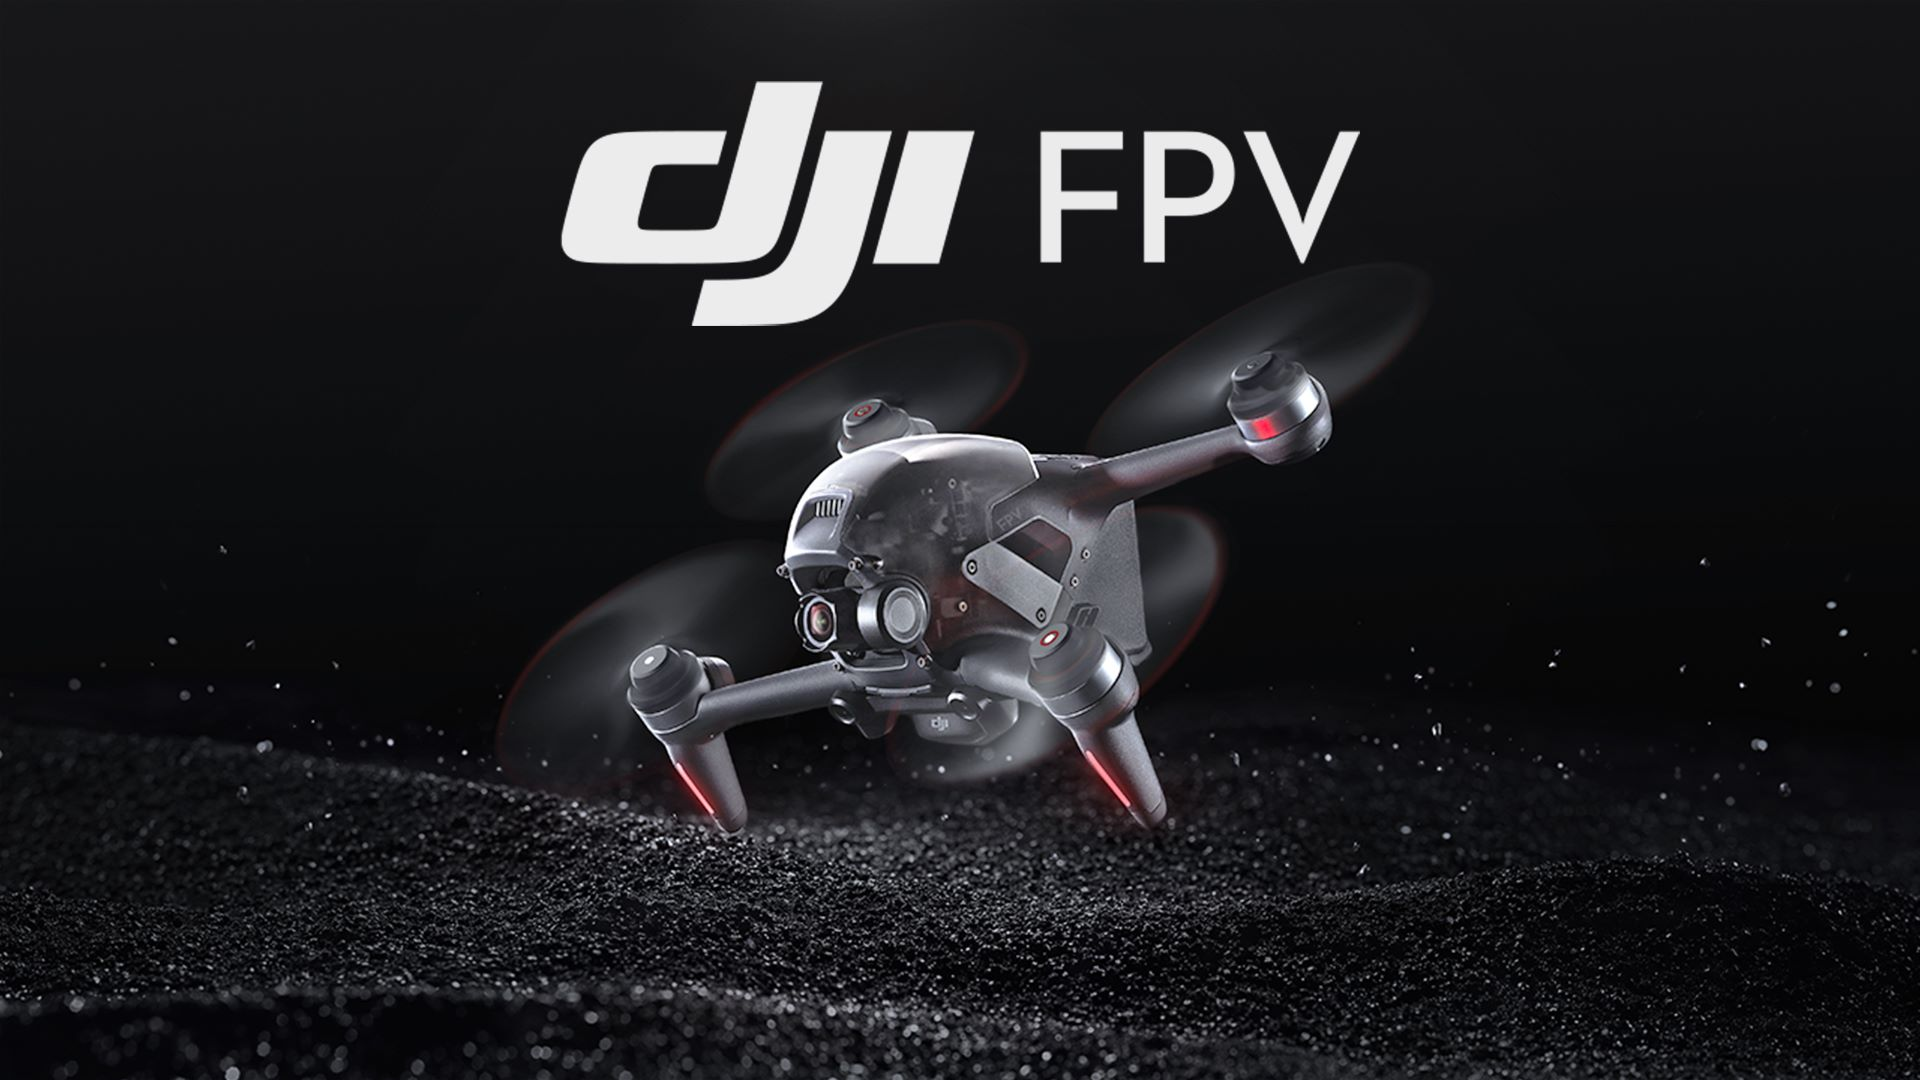 DJI FPV is the future of FPV.